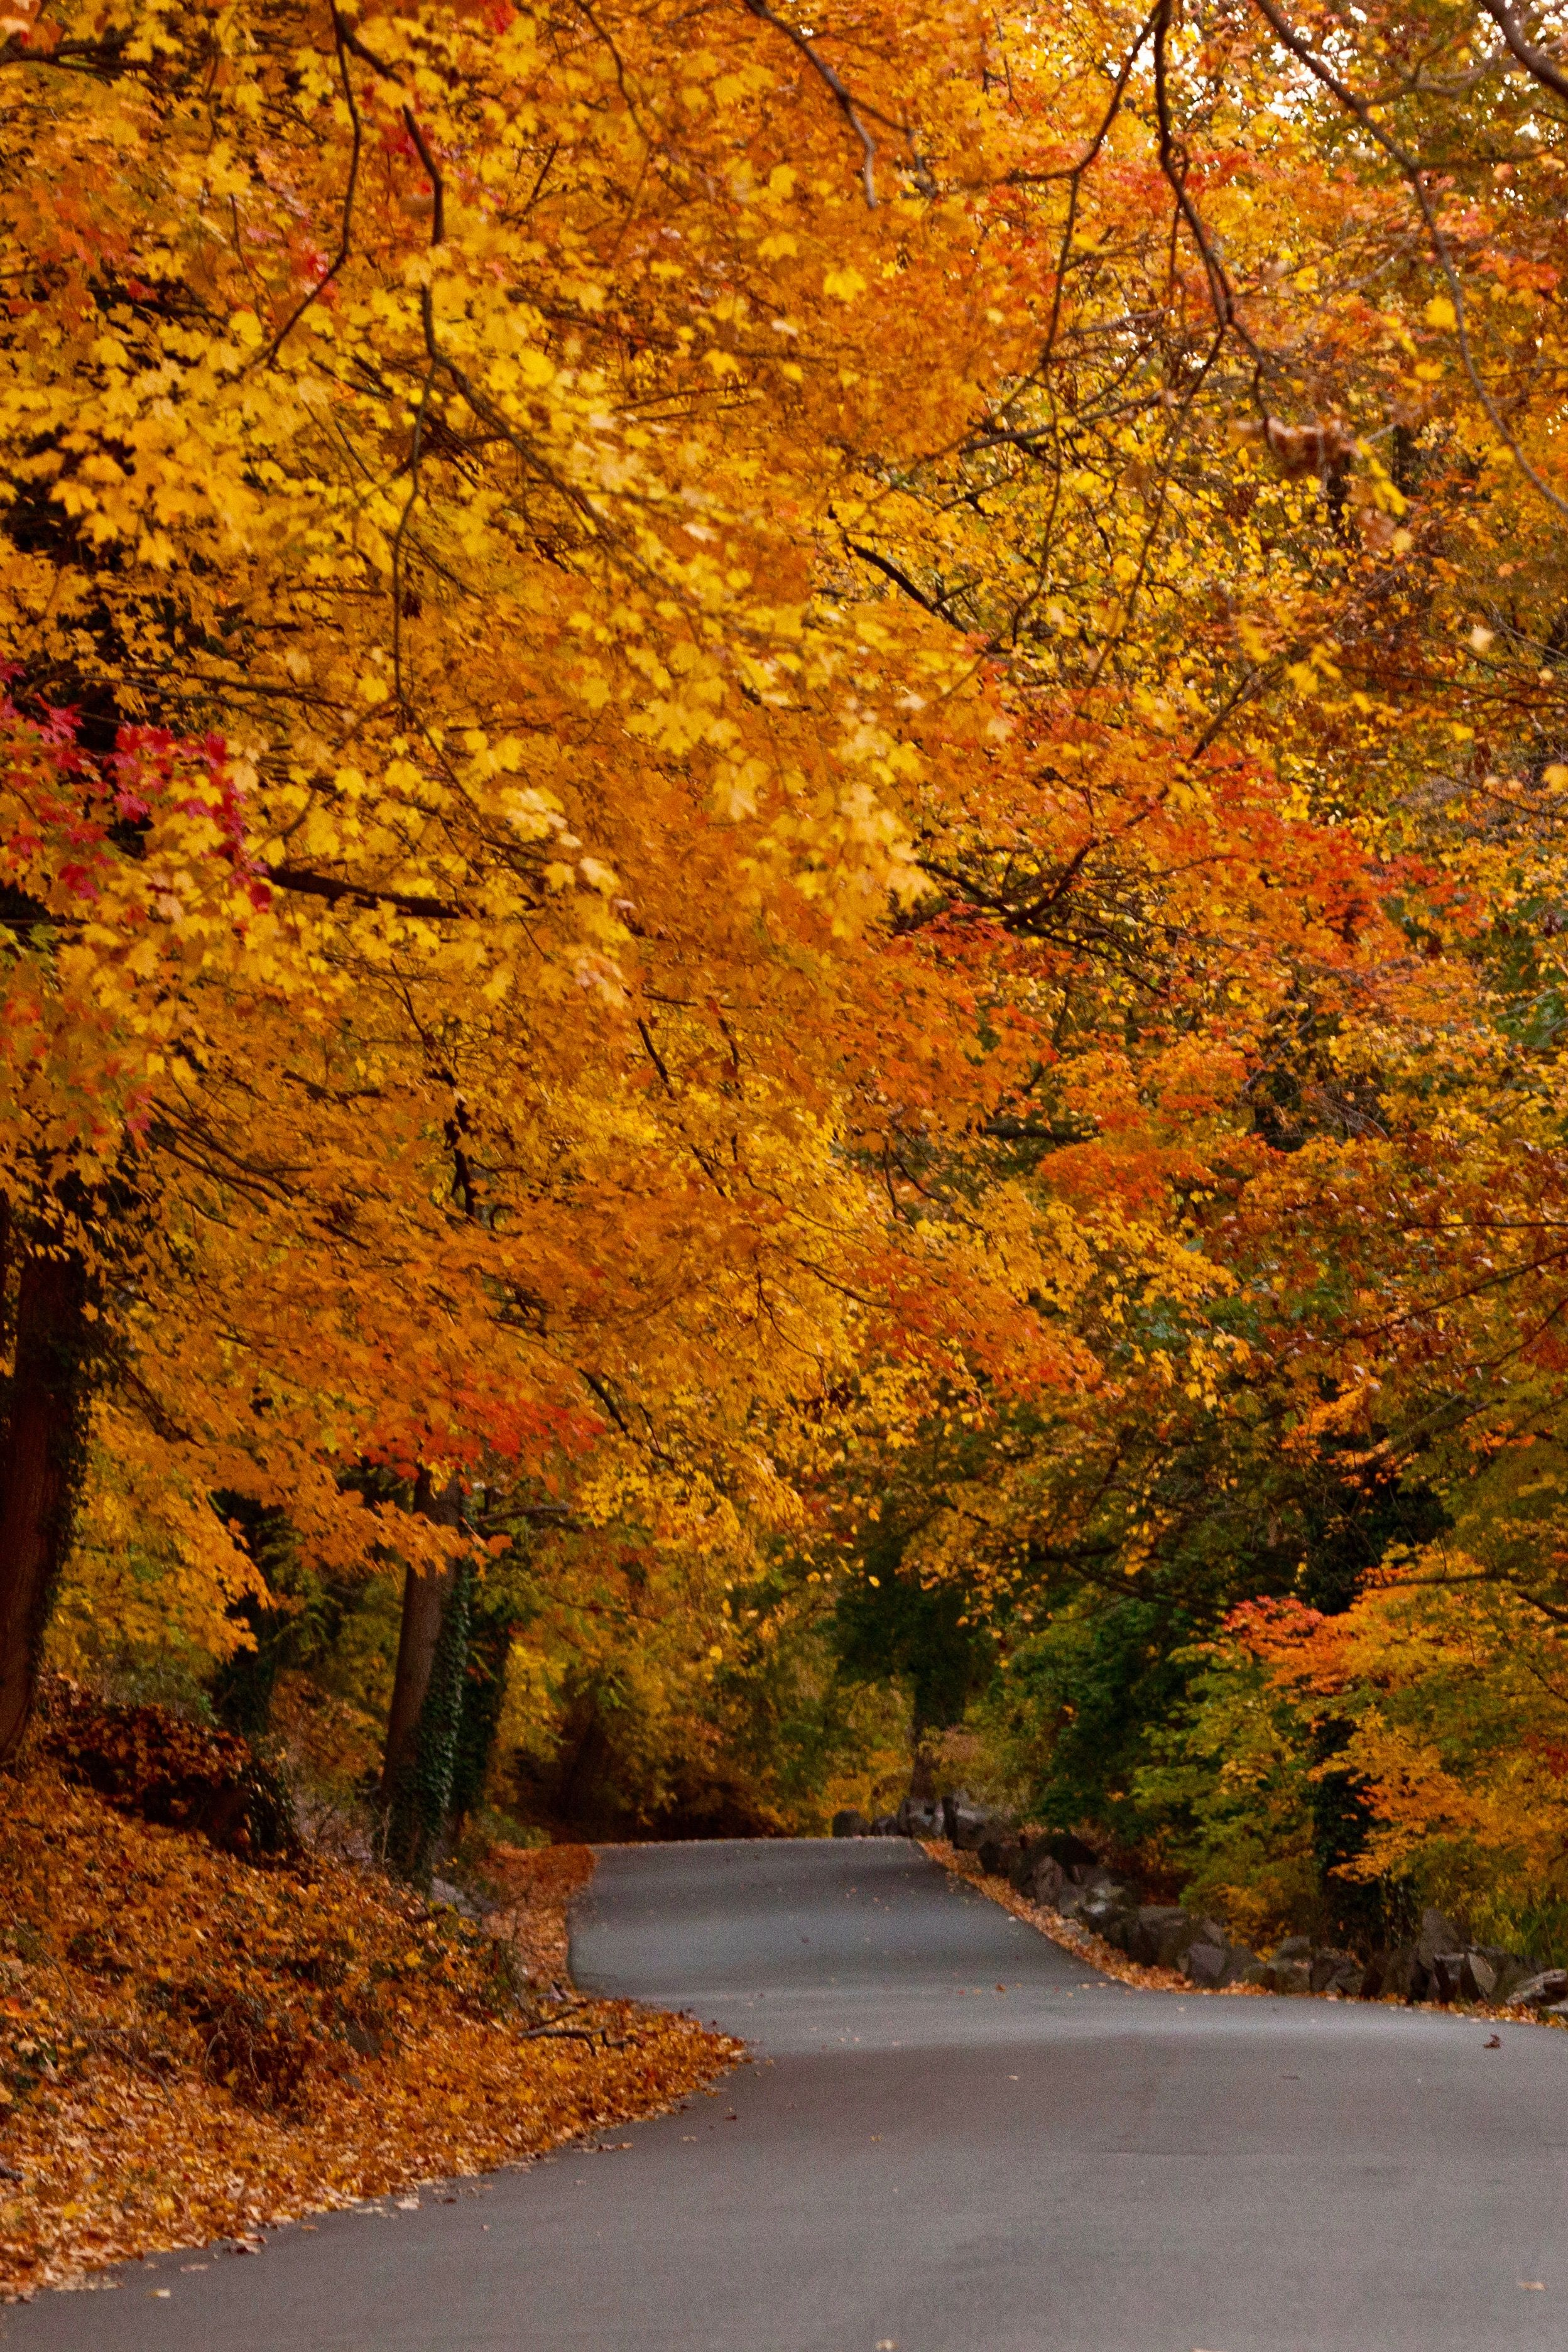 Take A Beautiful Fall Foliage Road Trip To See New Jersey S Autumn Colors Fall Foliage Road Trips Scenic Drive Scenic